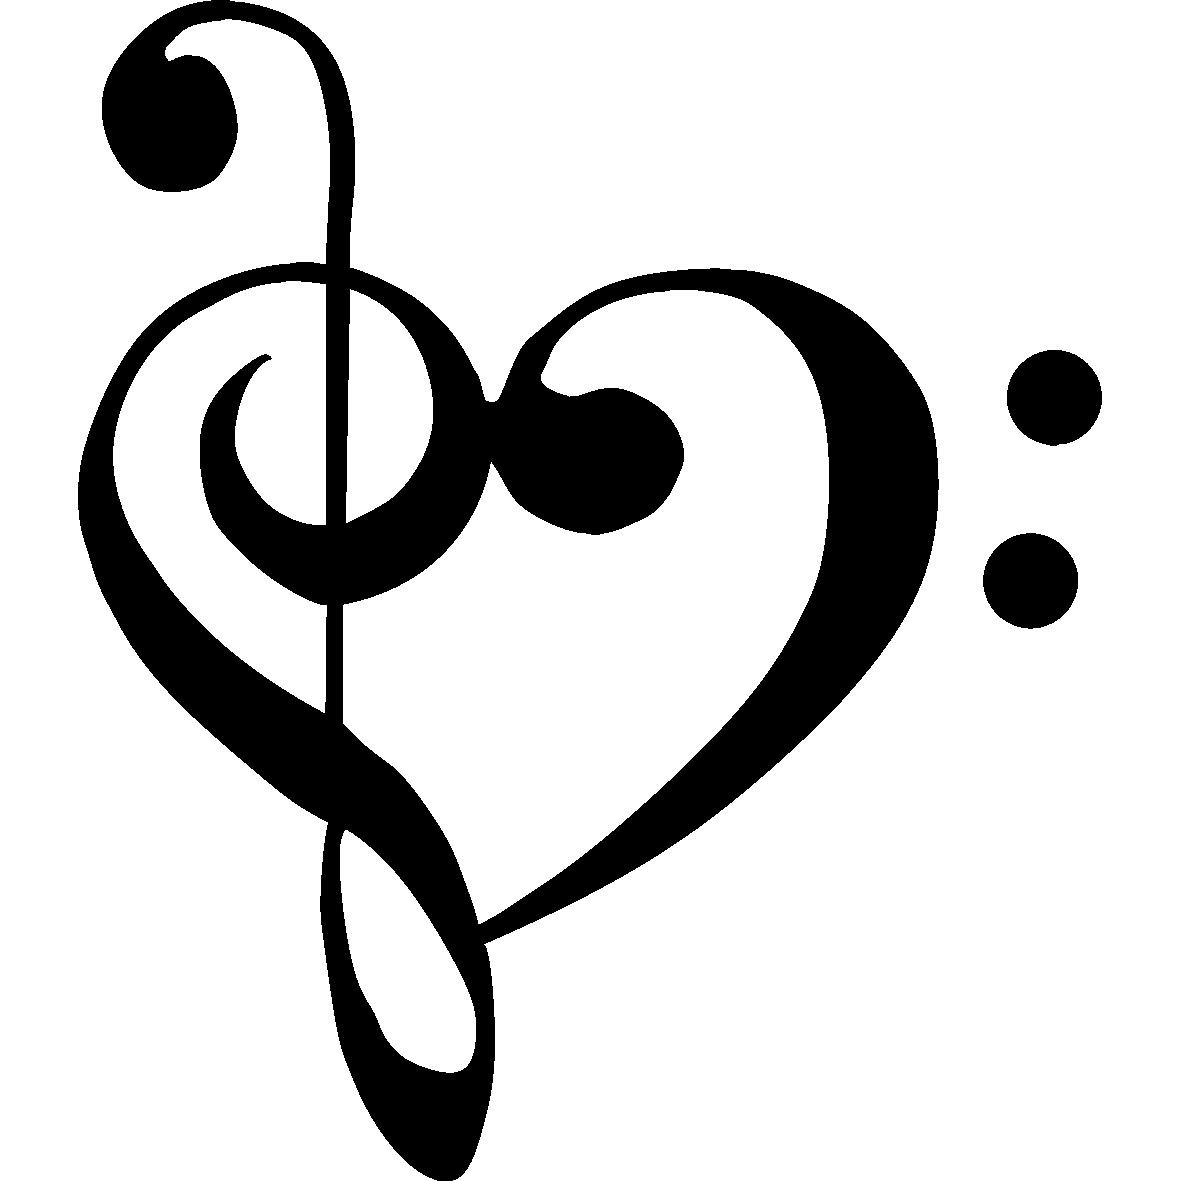 Treble Clef And Base Clef Heart❤❤❤-Treble Clef and Base Clef Heart❤❤❤❤-12